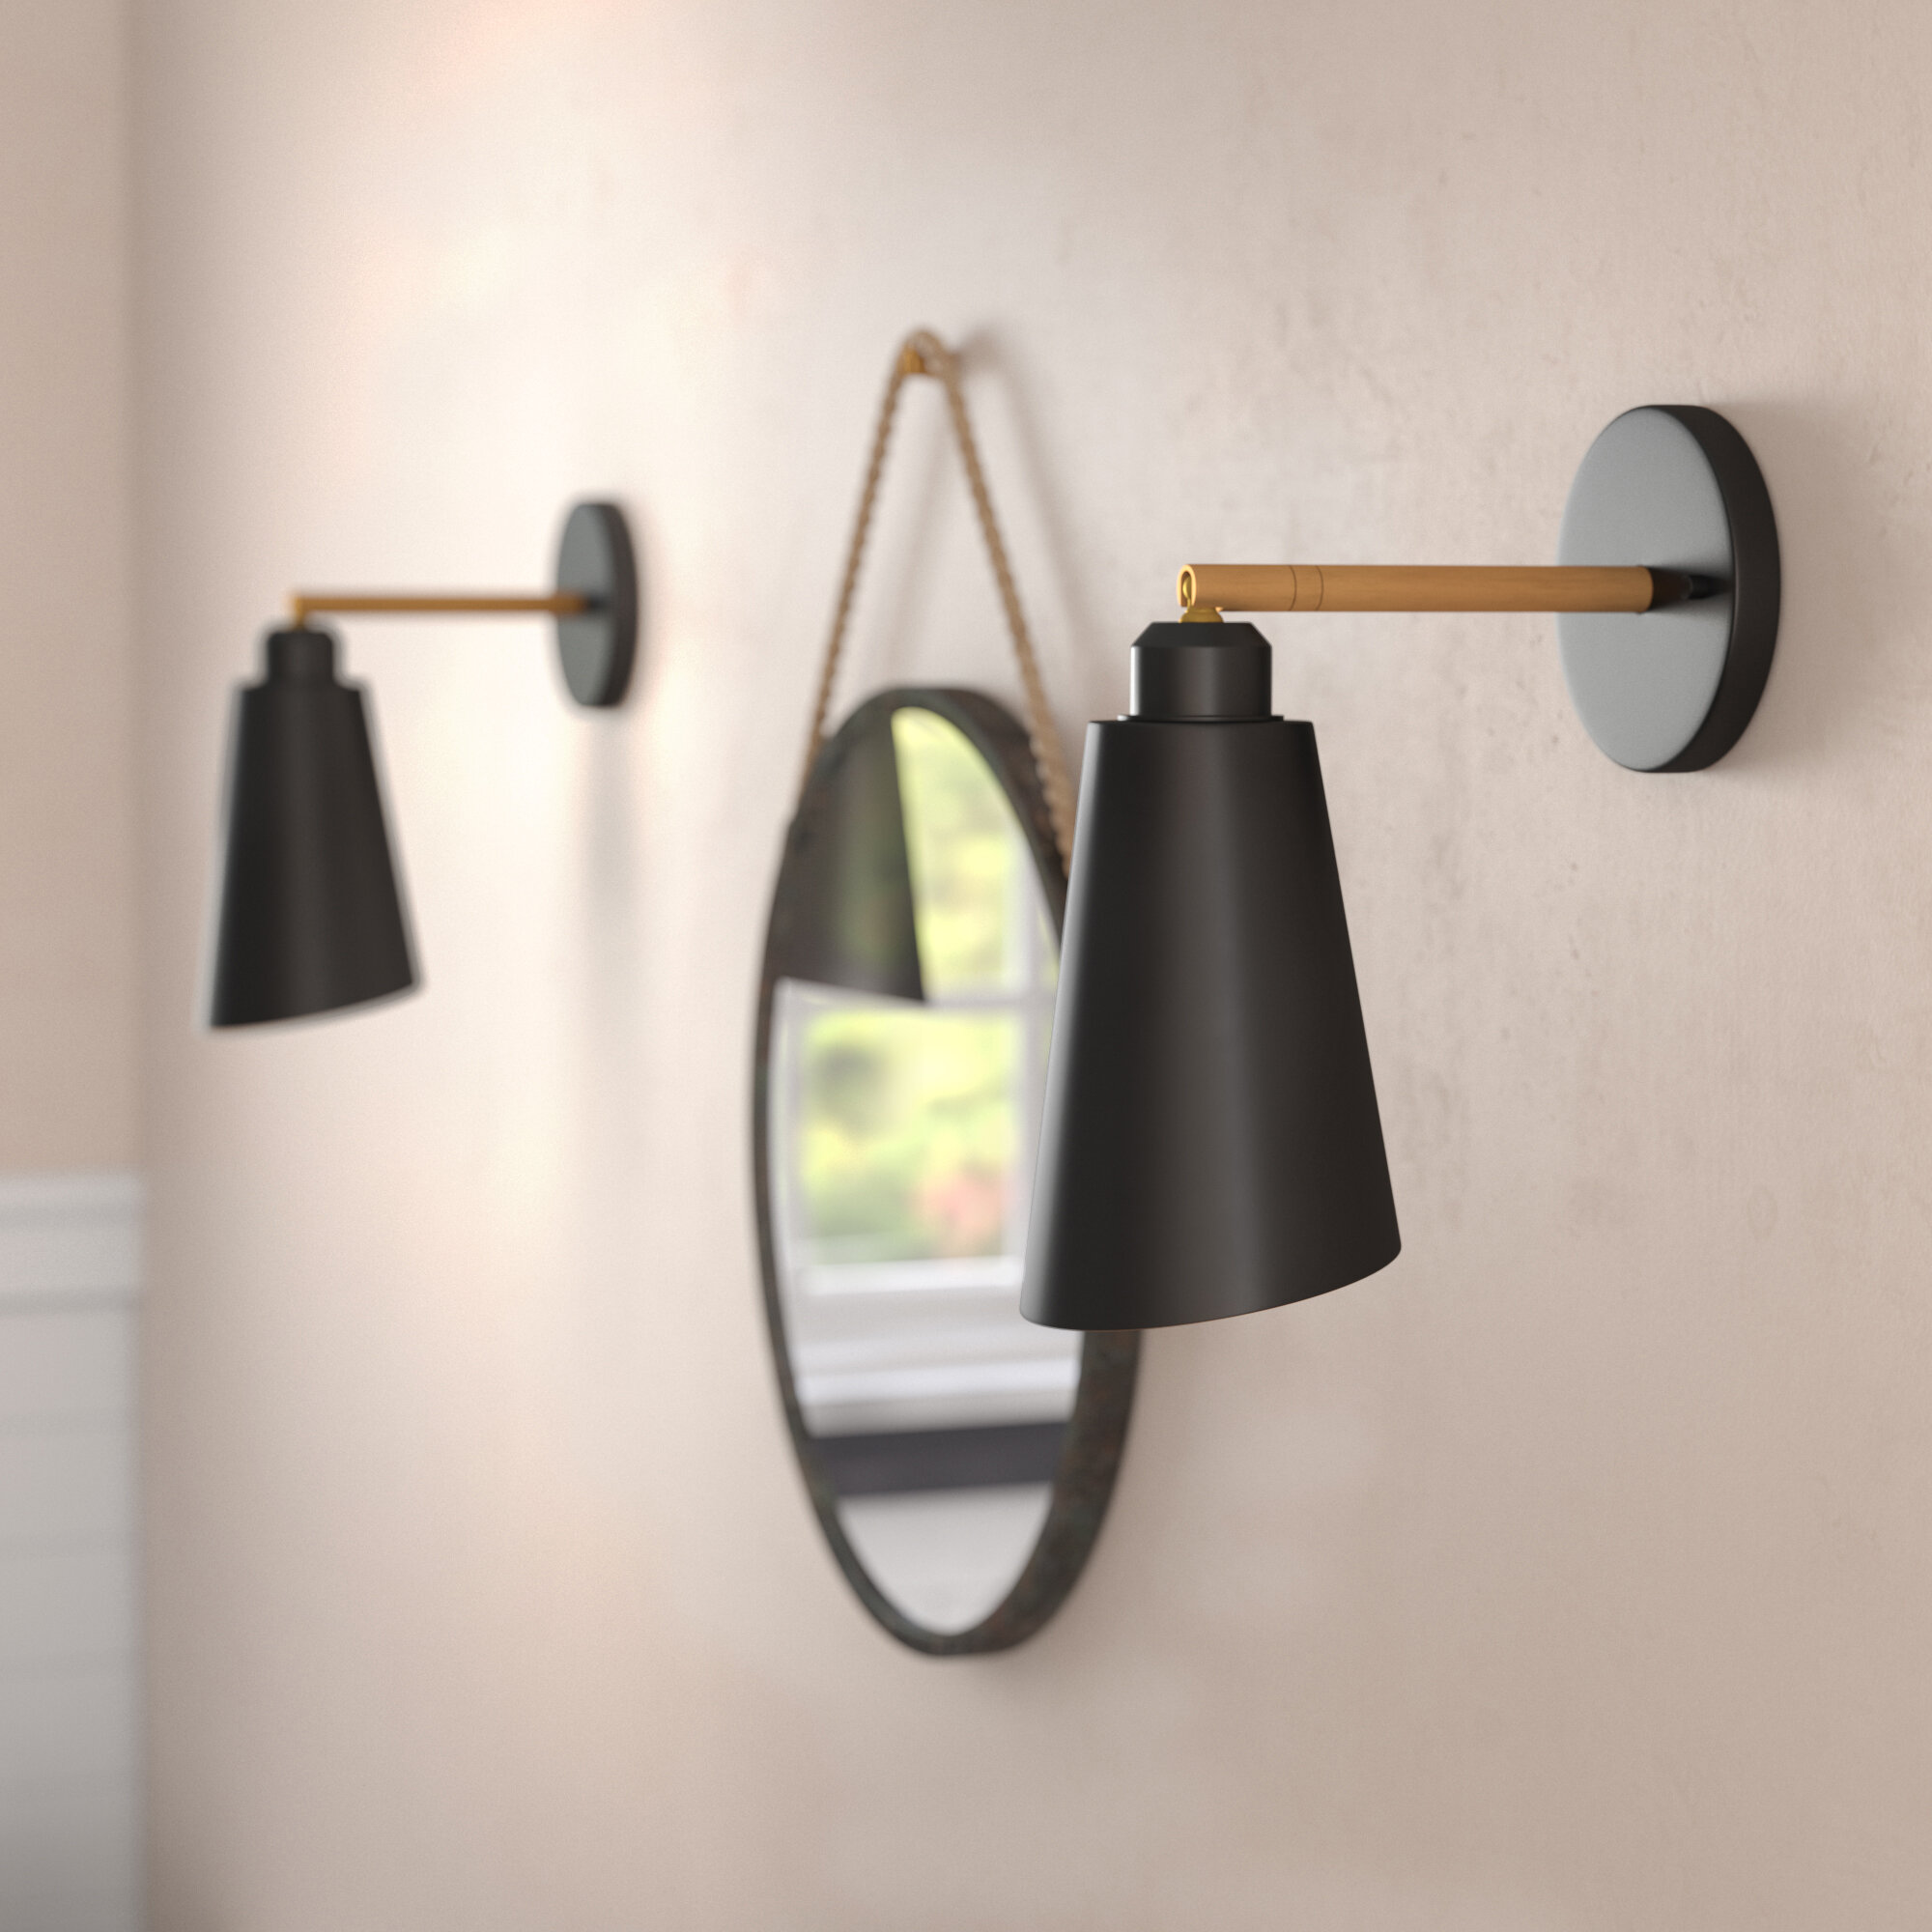 Valmonte 1 Light Armed Sconce